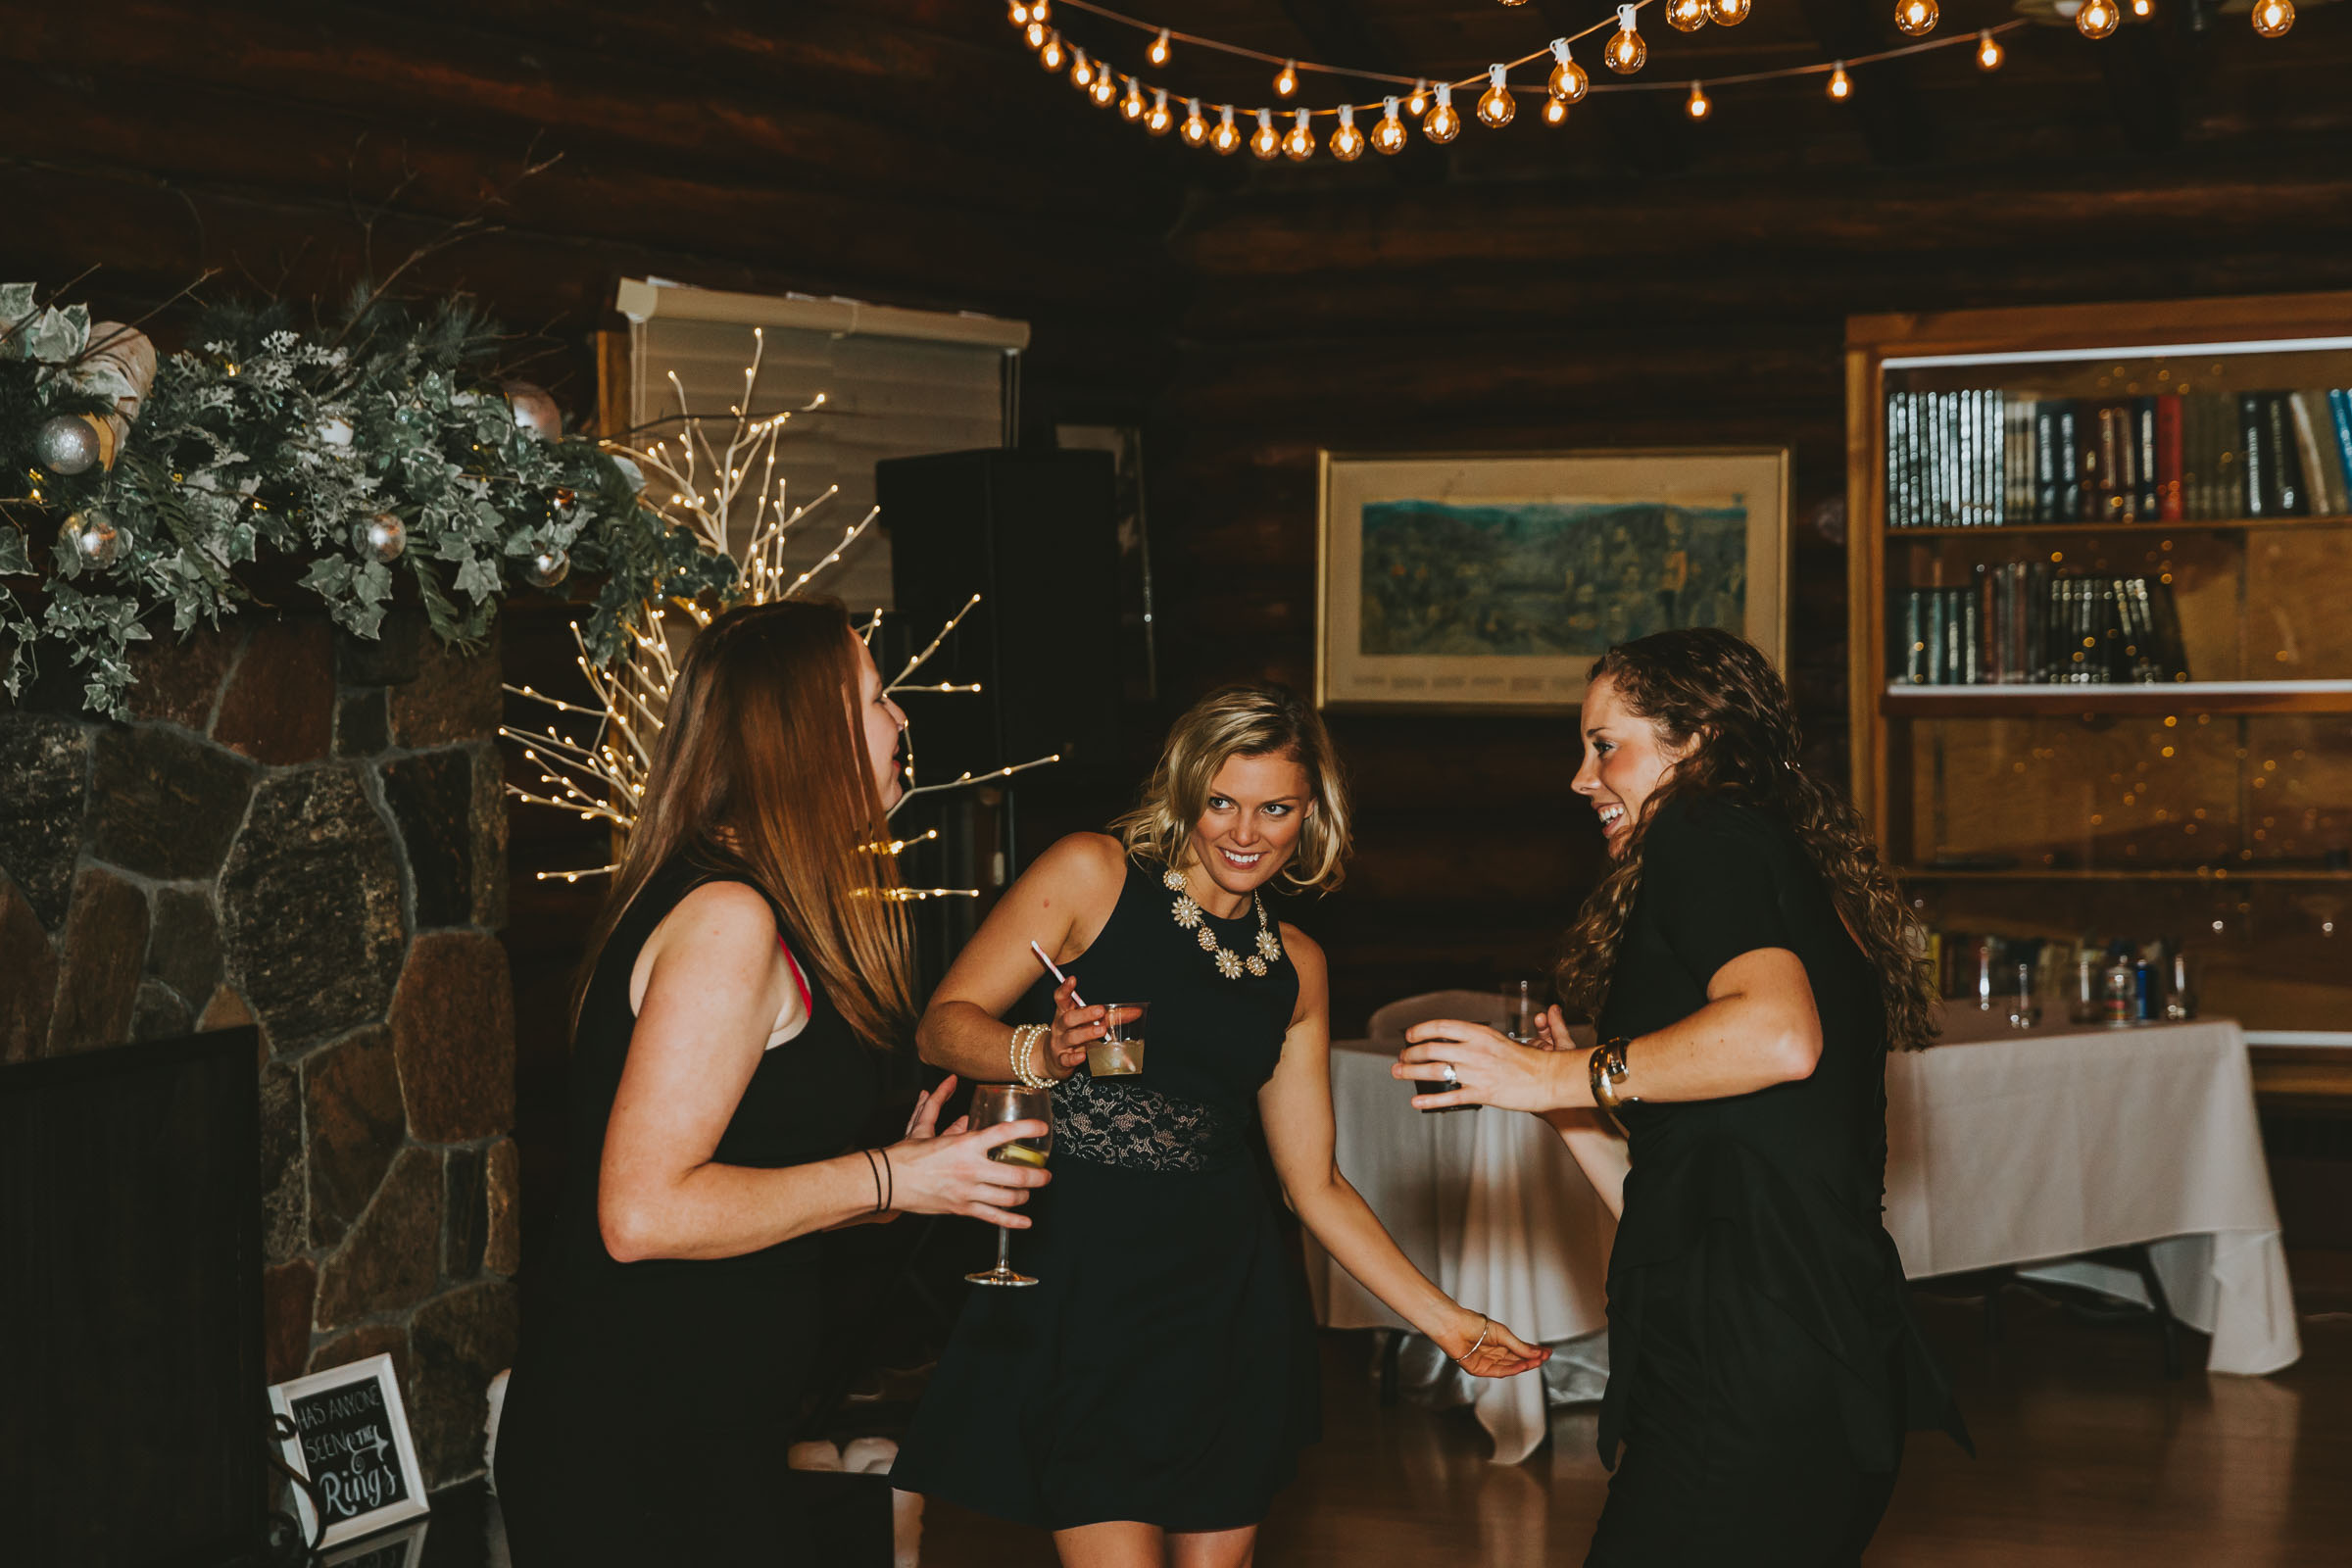 Schrumannwedding__MGL6523_dec102016.jpg